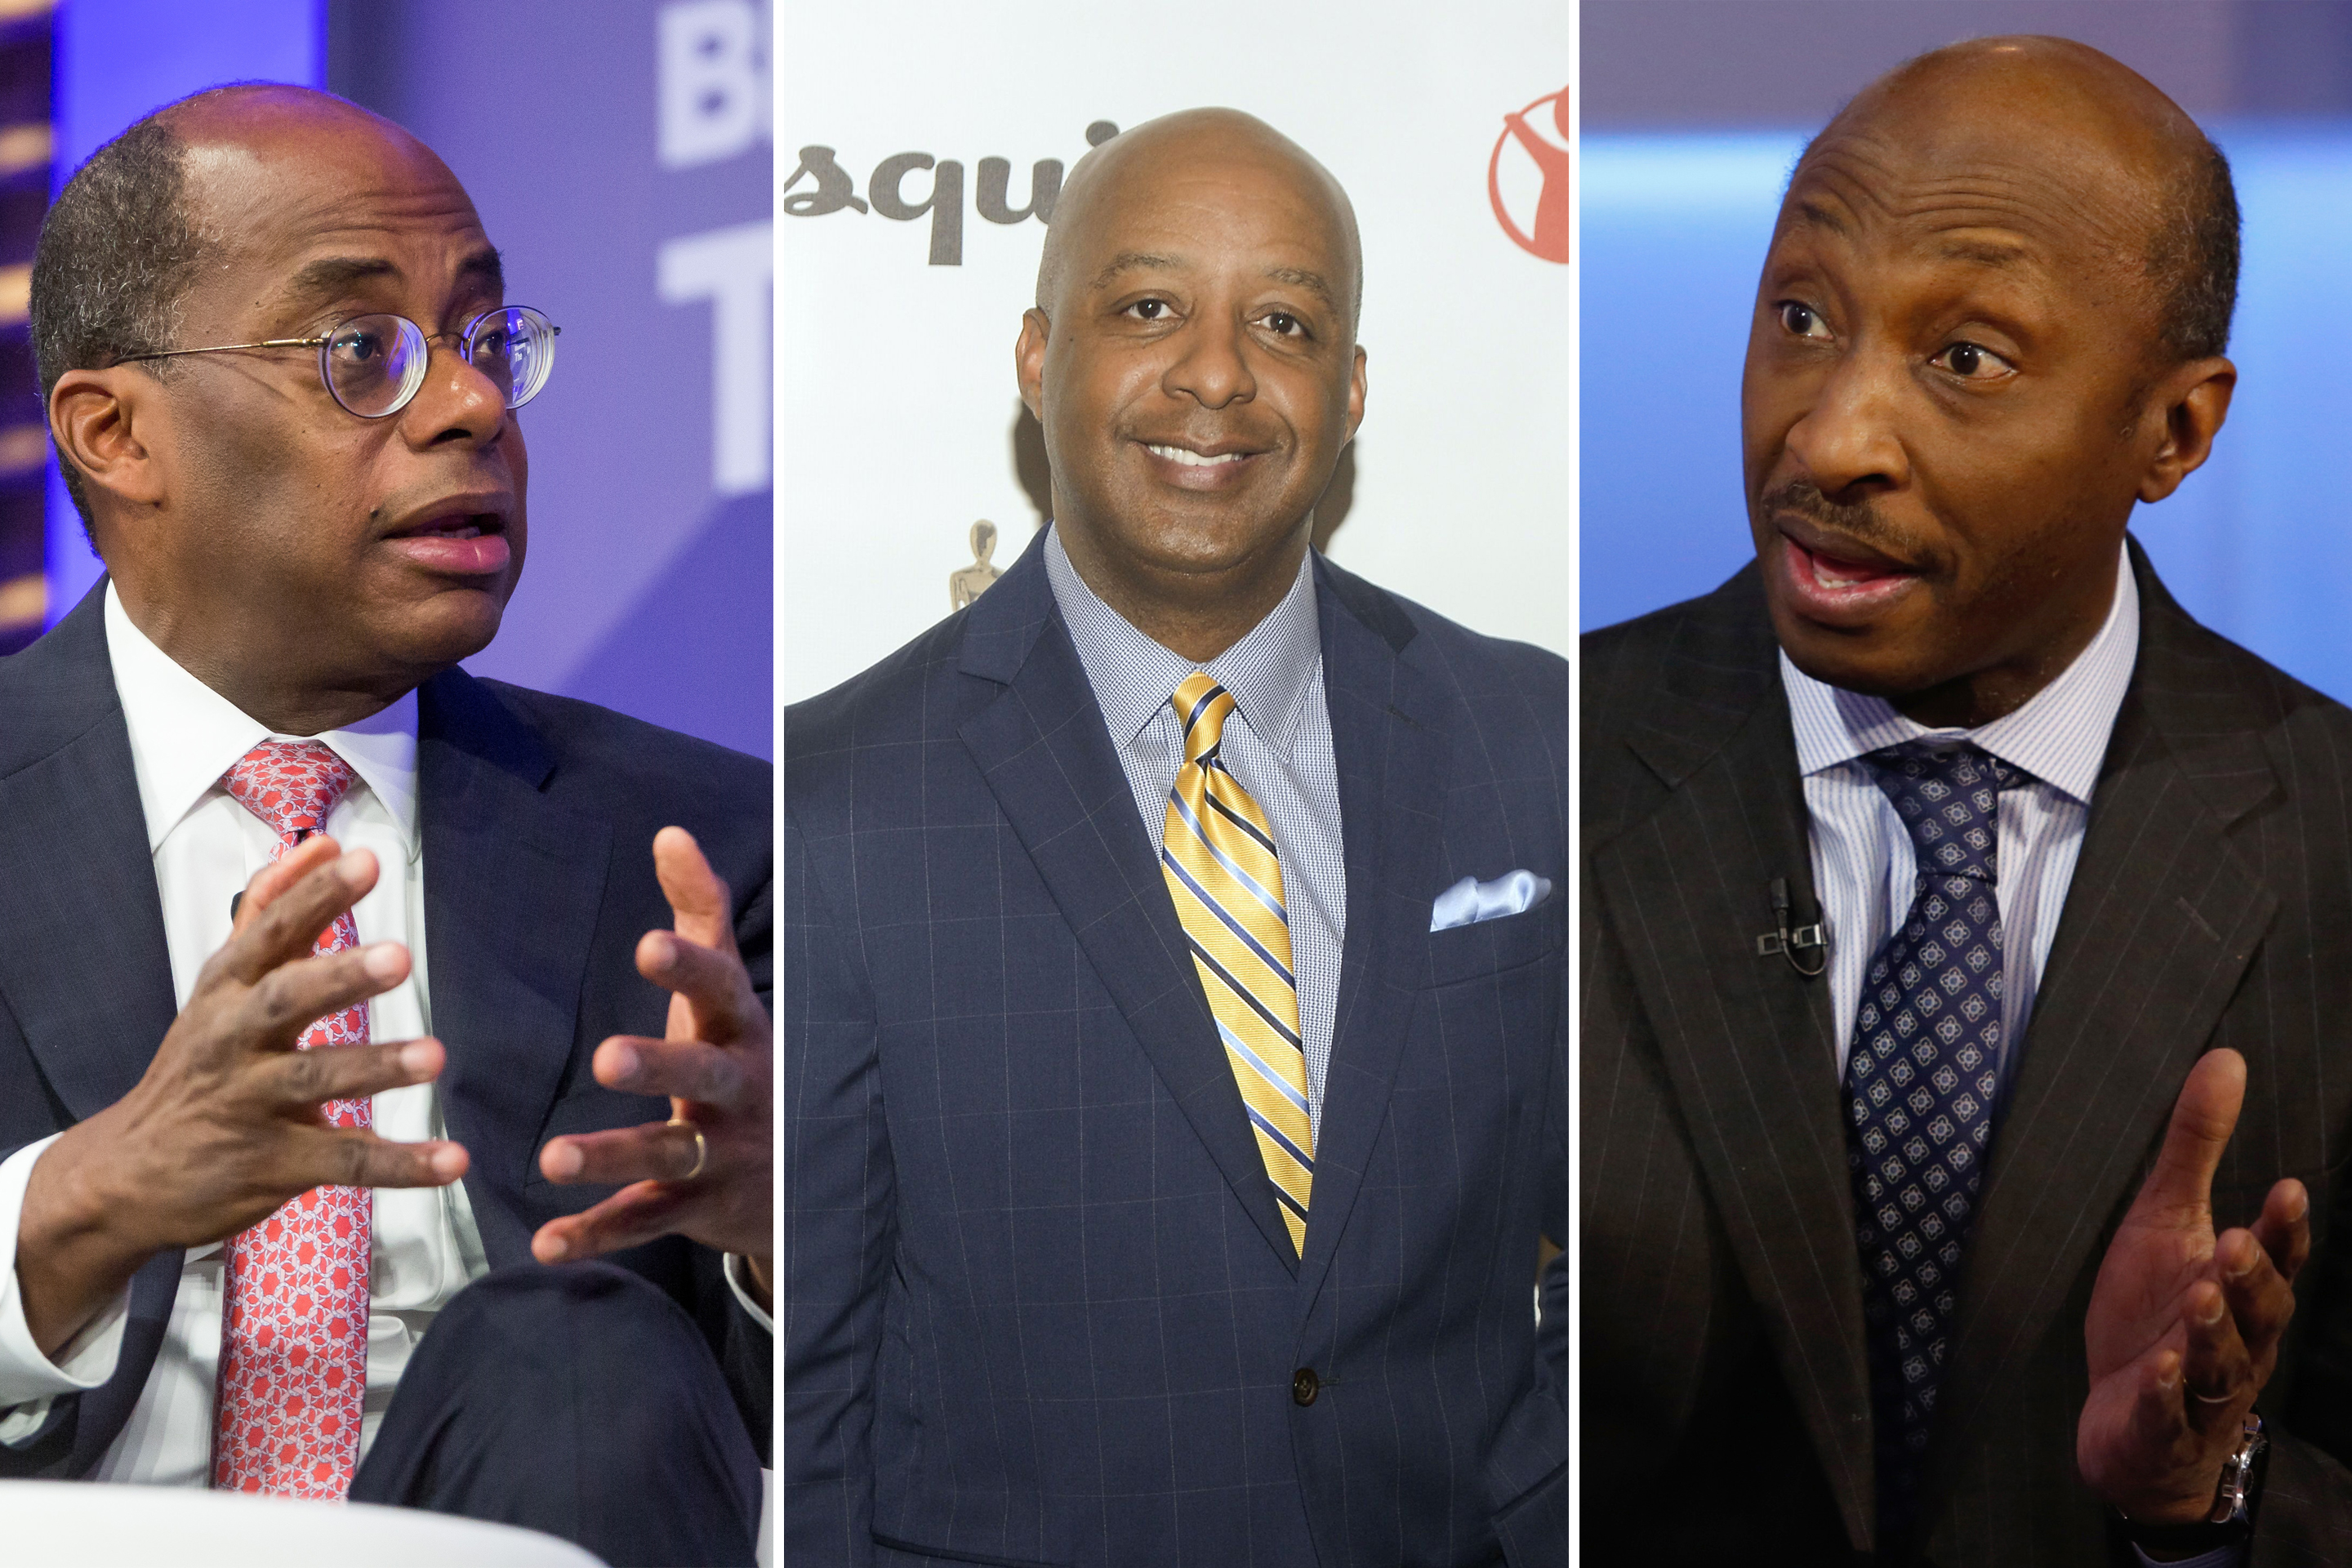 African American CEOs at Fortune 500 Companies Is Its Lowest Since 2002